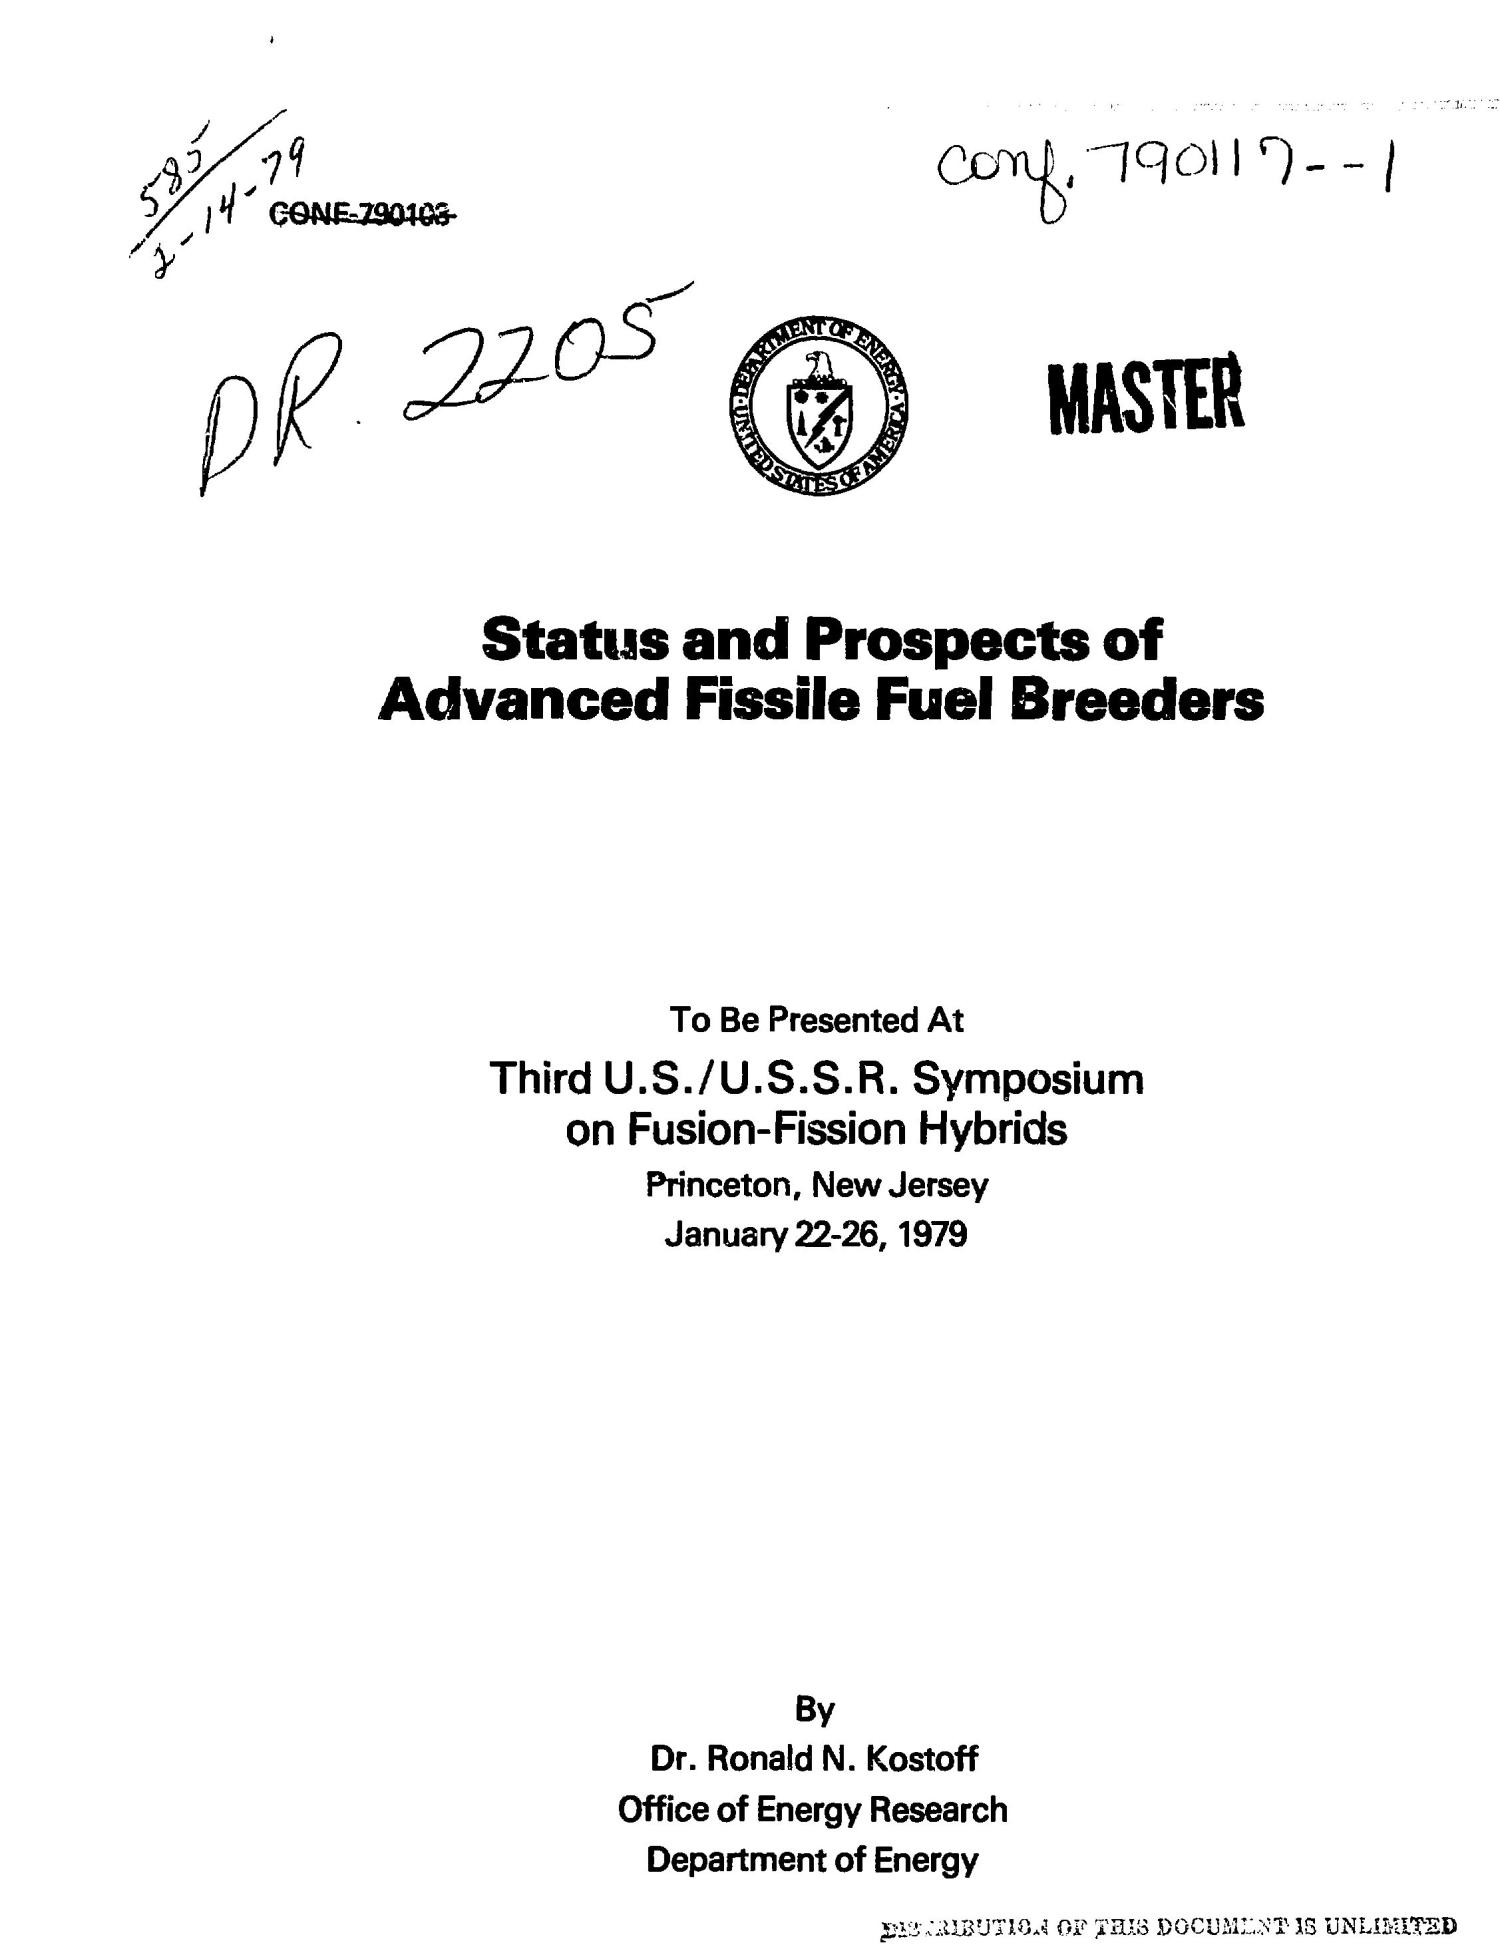 Status and prospects of advanced fissile fuel breeders                                                                                                      [Sequence #]: 1 of 130